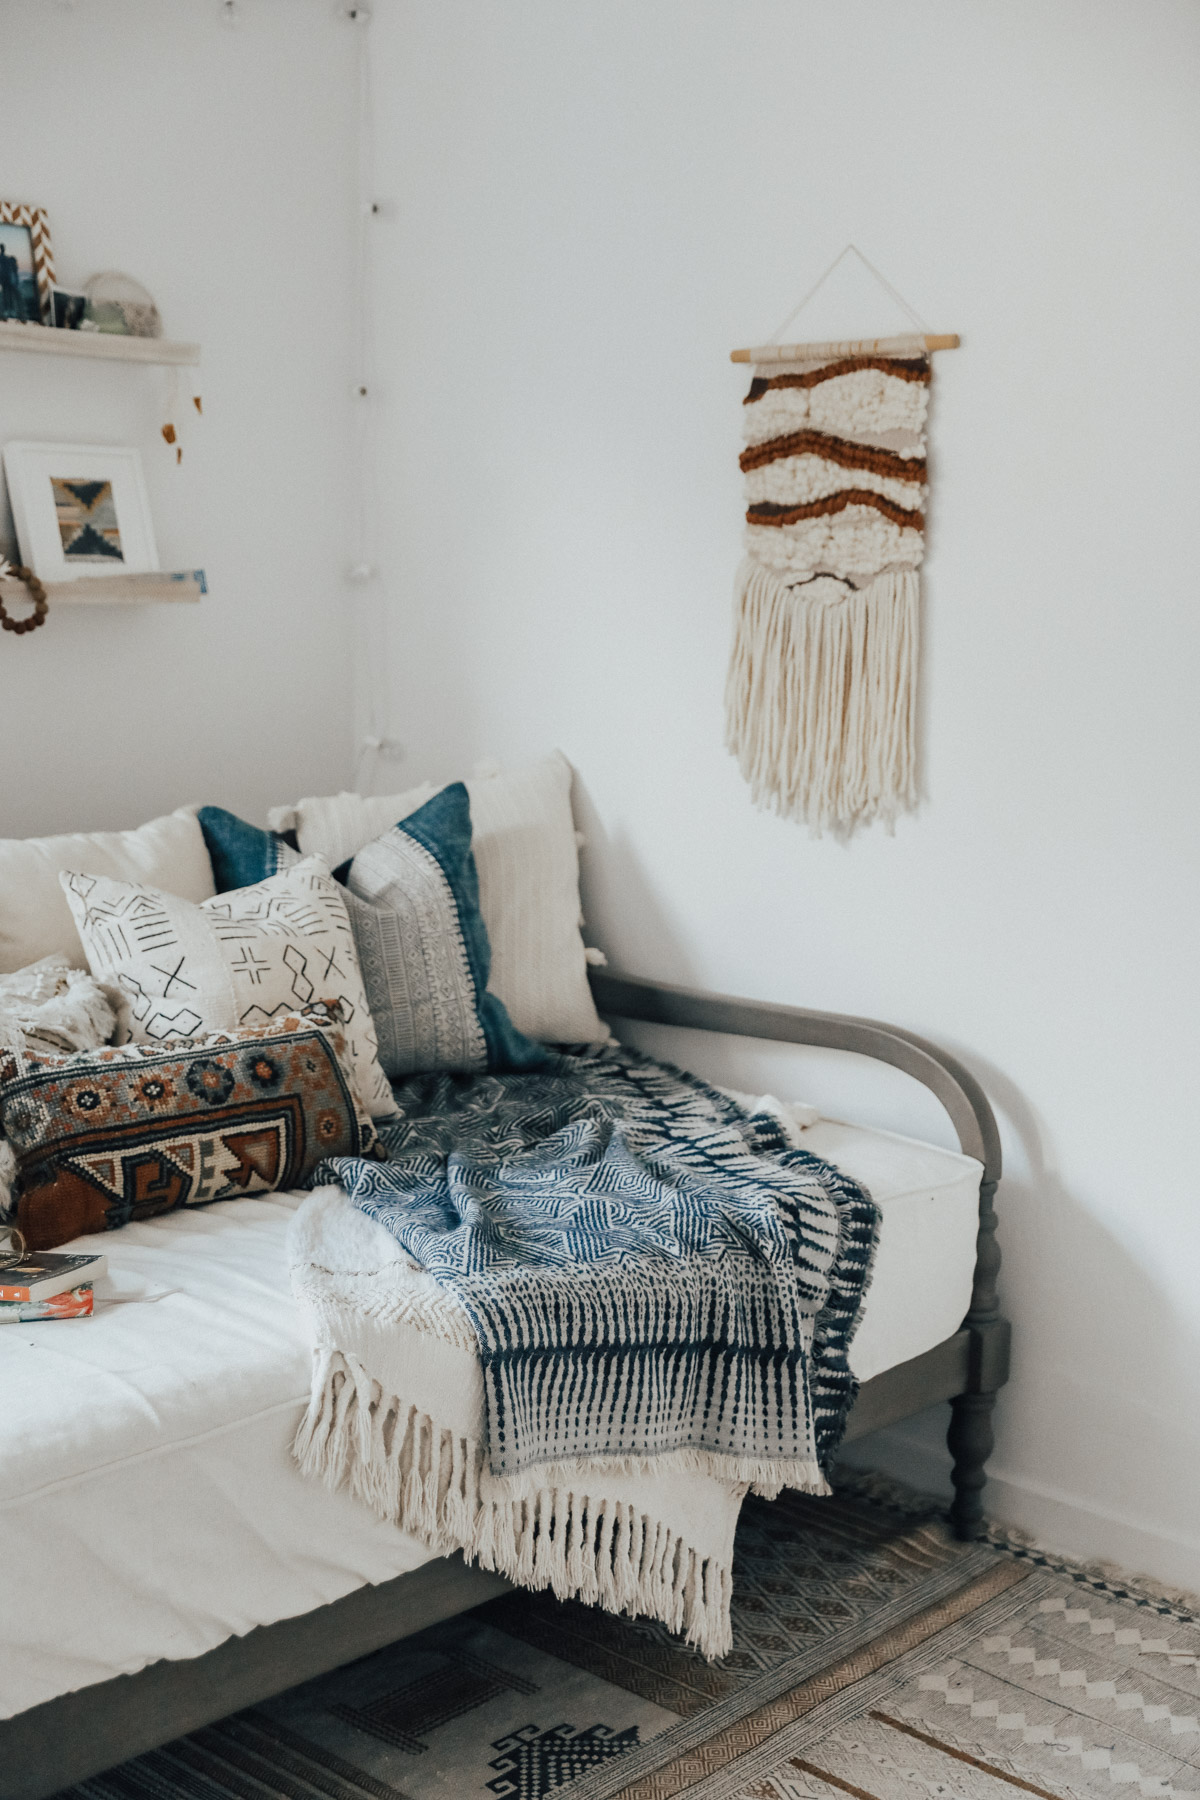 How To Style A Daybed Advice From A Twenty Something